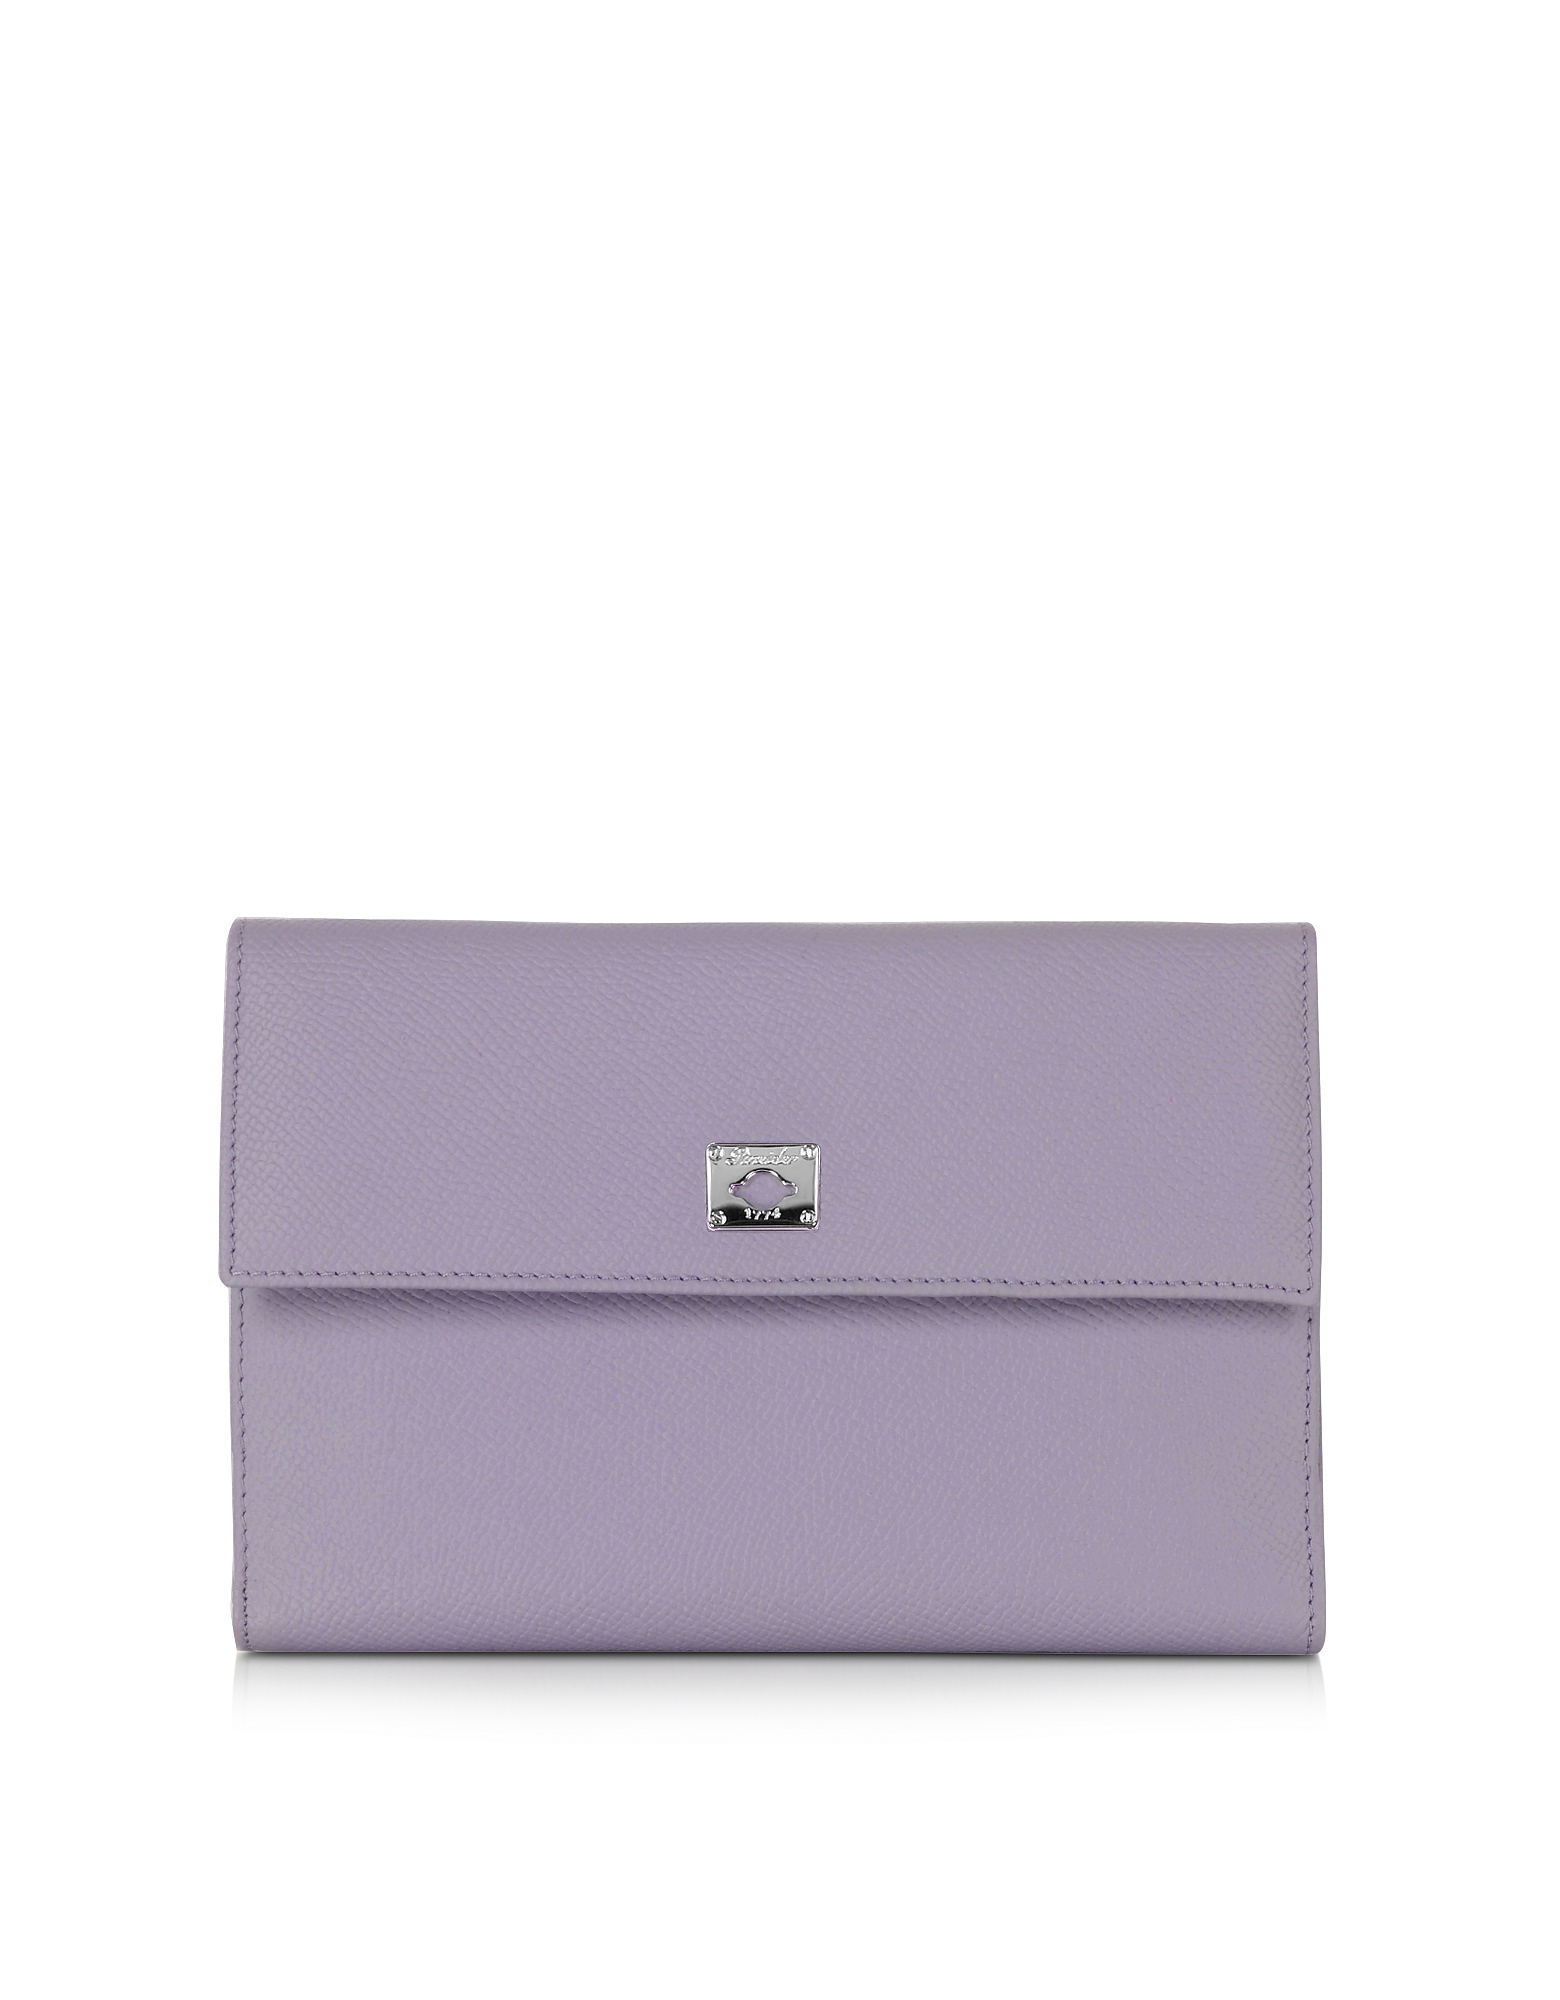 Pineider Handbags, City Chic Lilac Leather French Purse Wallet